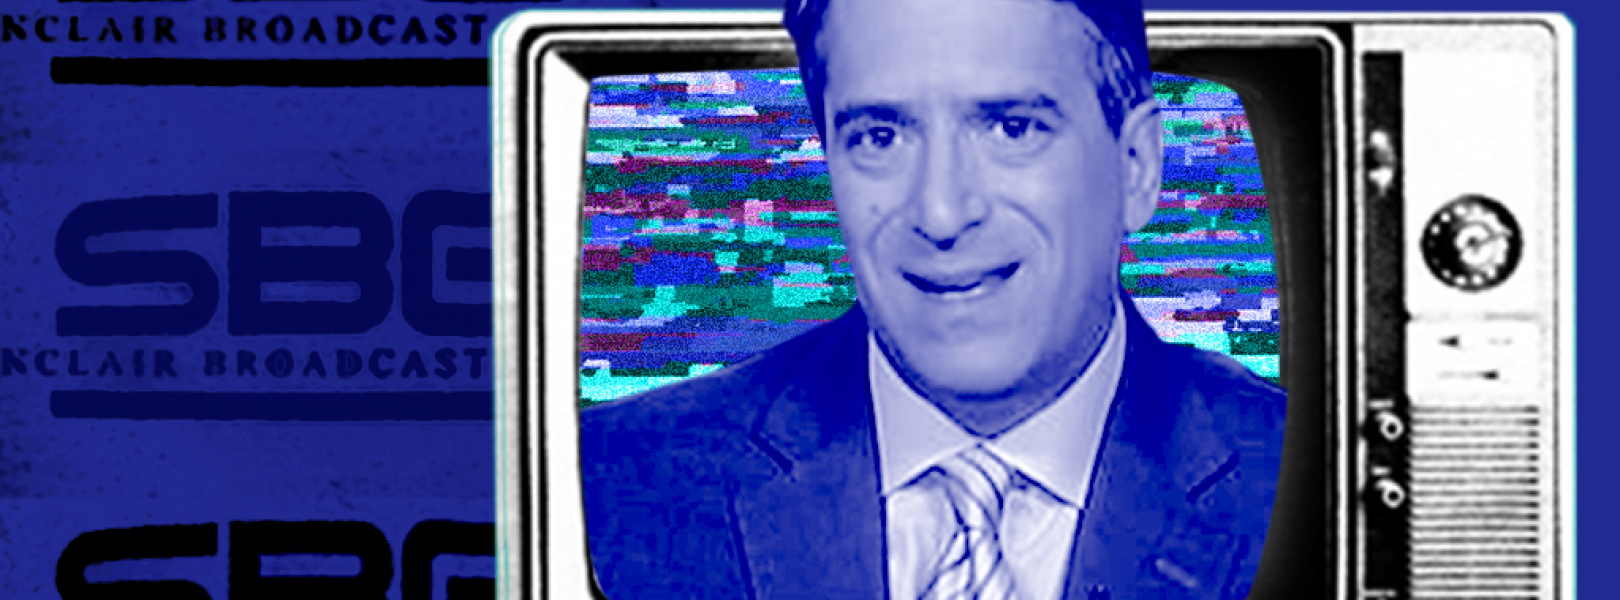 Sinclair Broadcast Group investigative reporter James Rosen